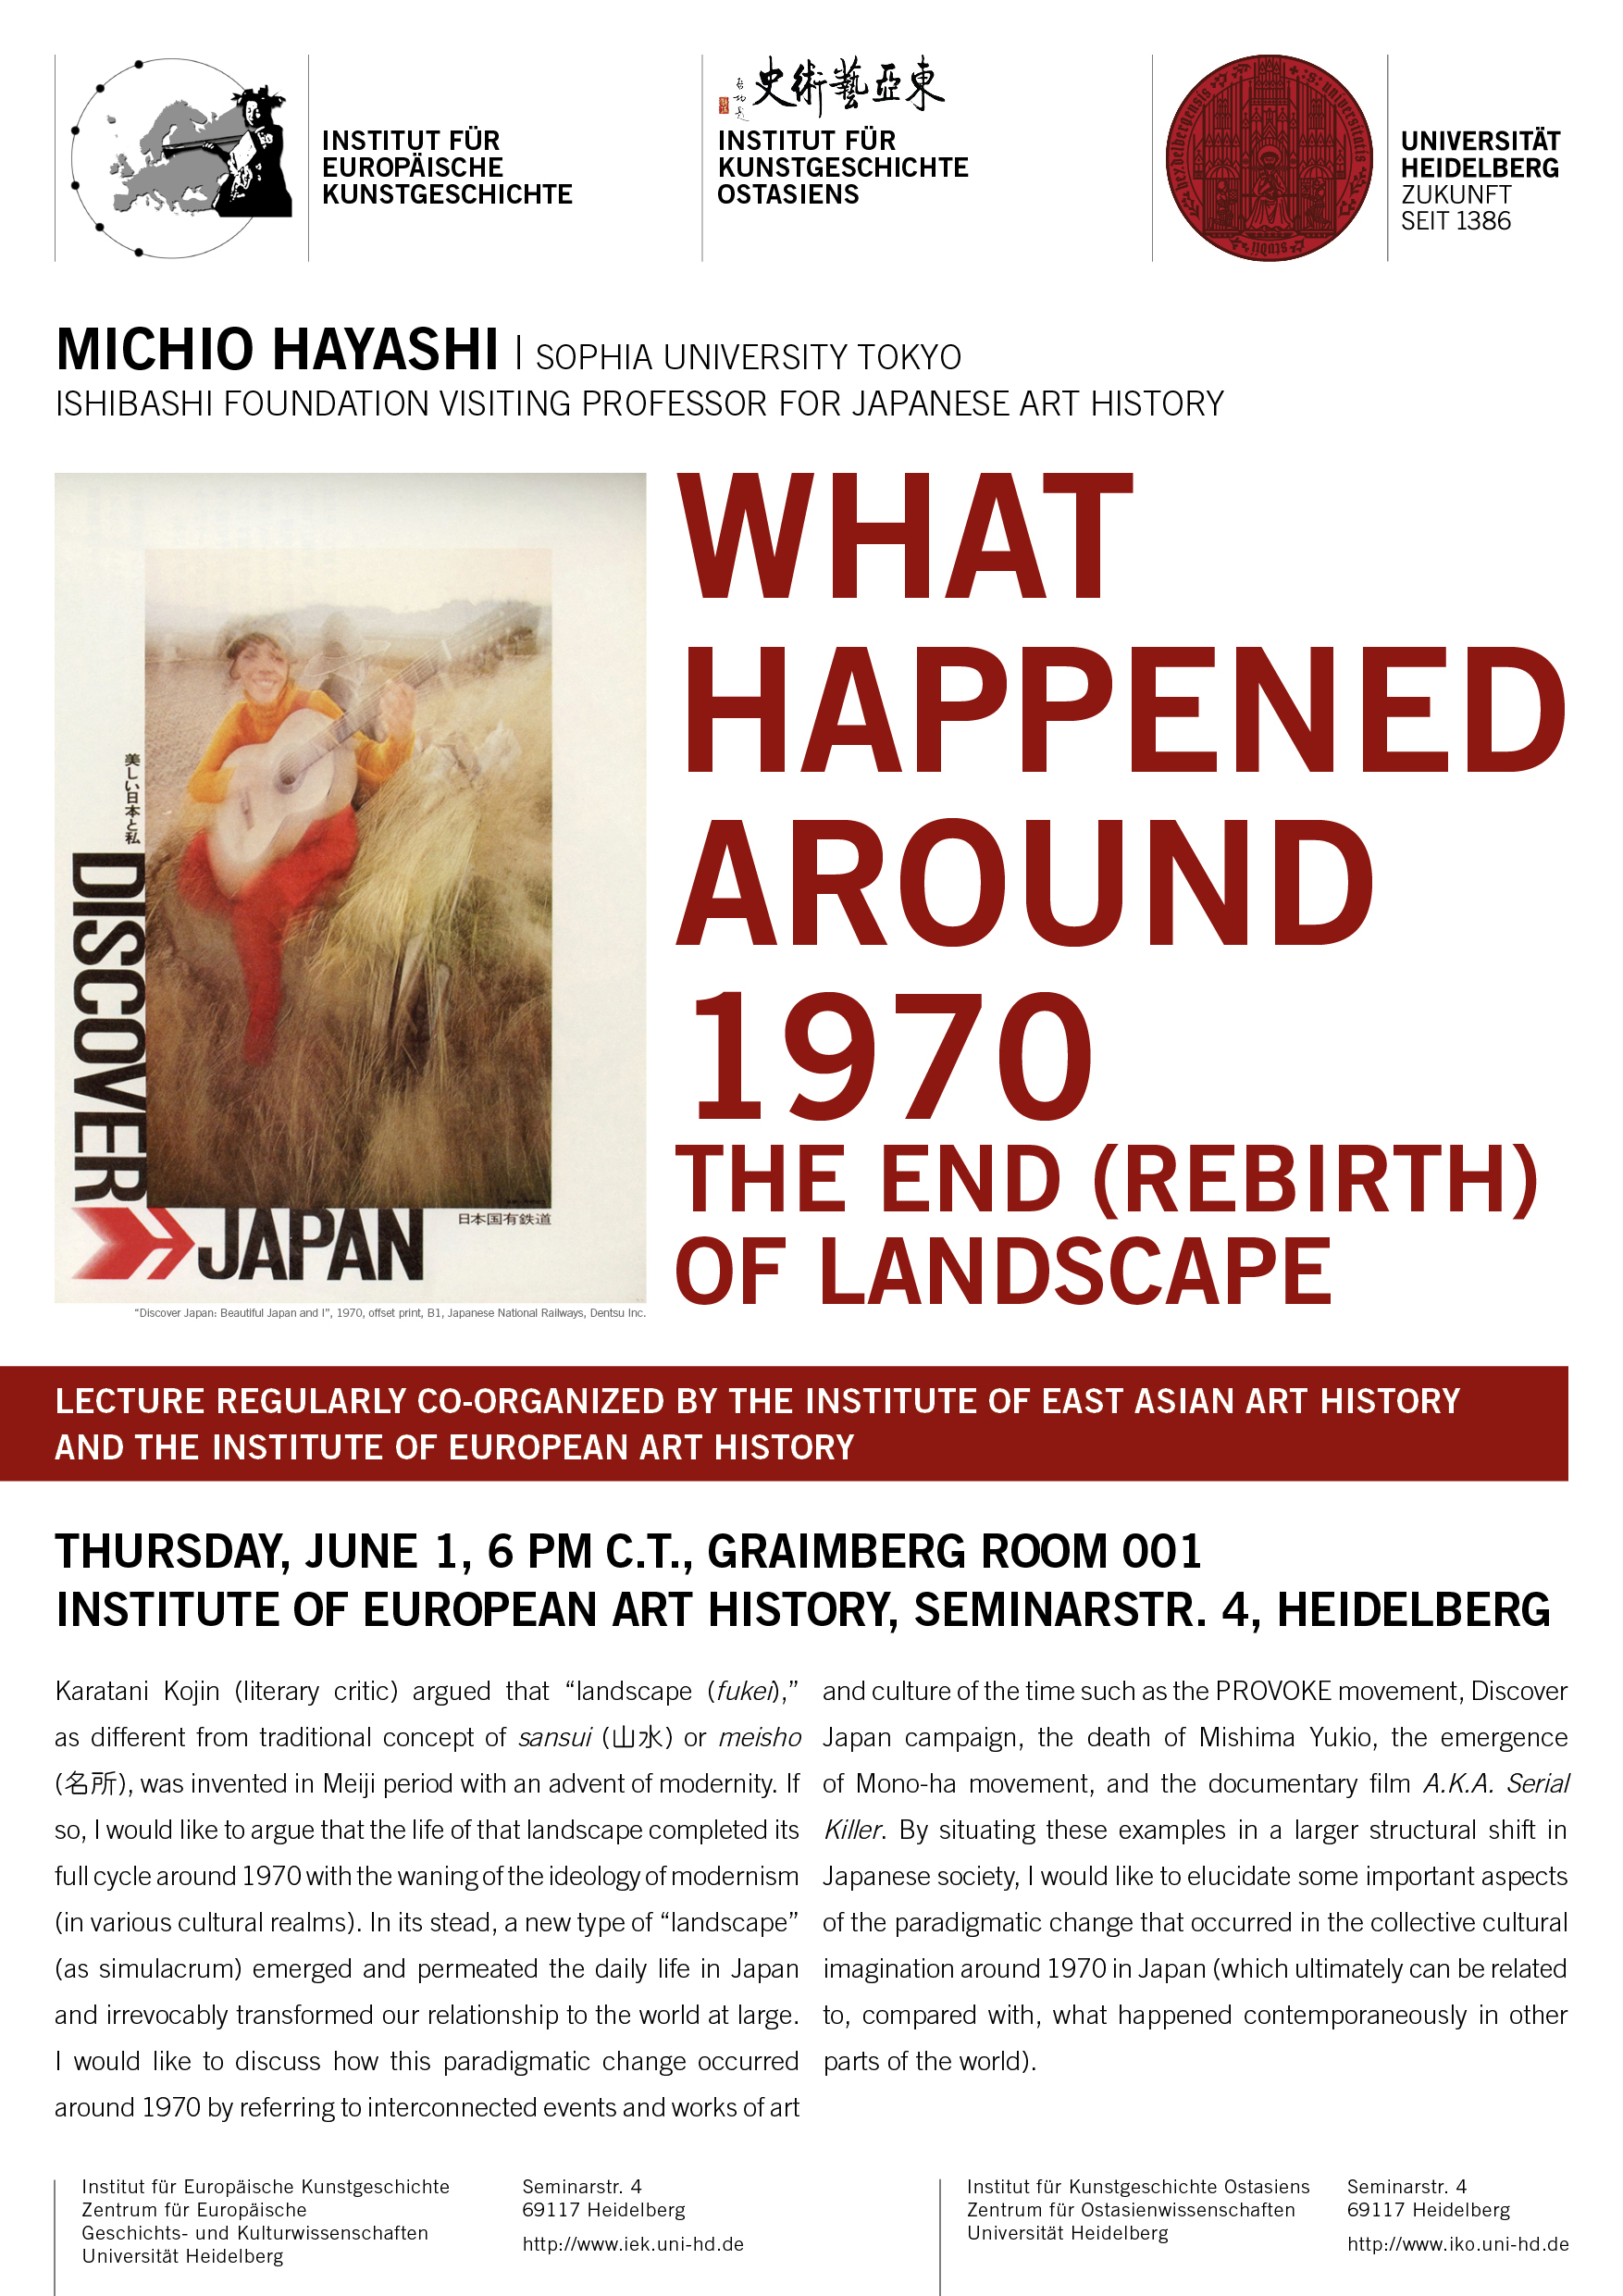 1. Juni 2017 | Michio Hayashi: What Happened around 1970. The End (Rebirth) of Landscape